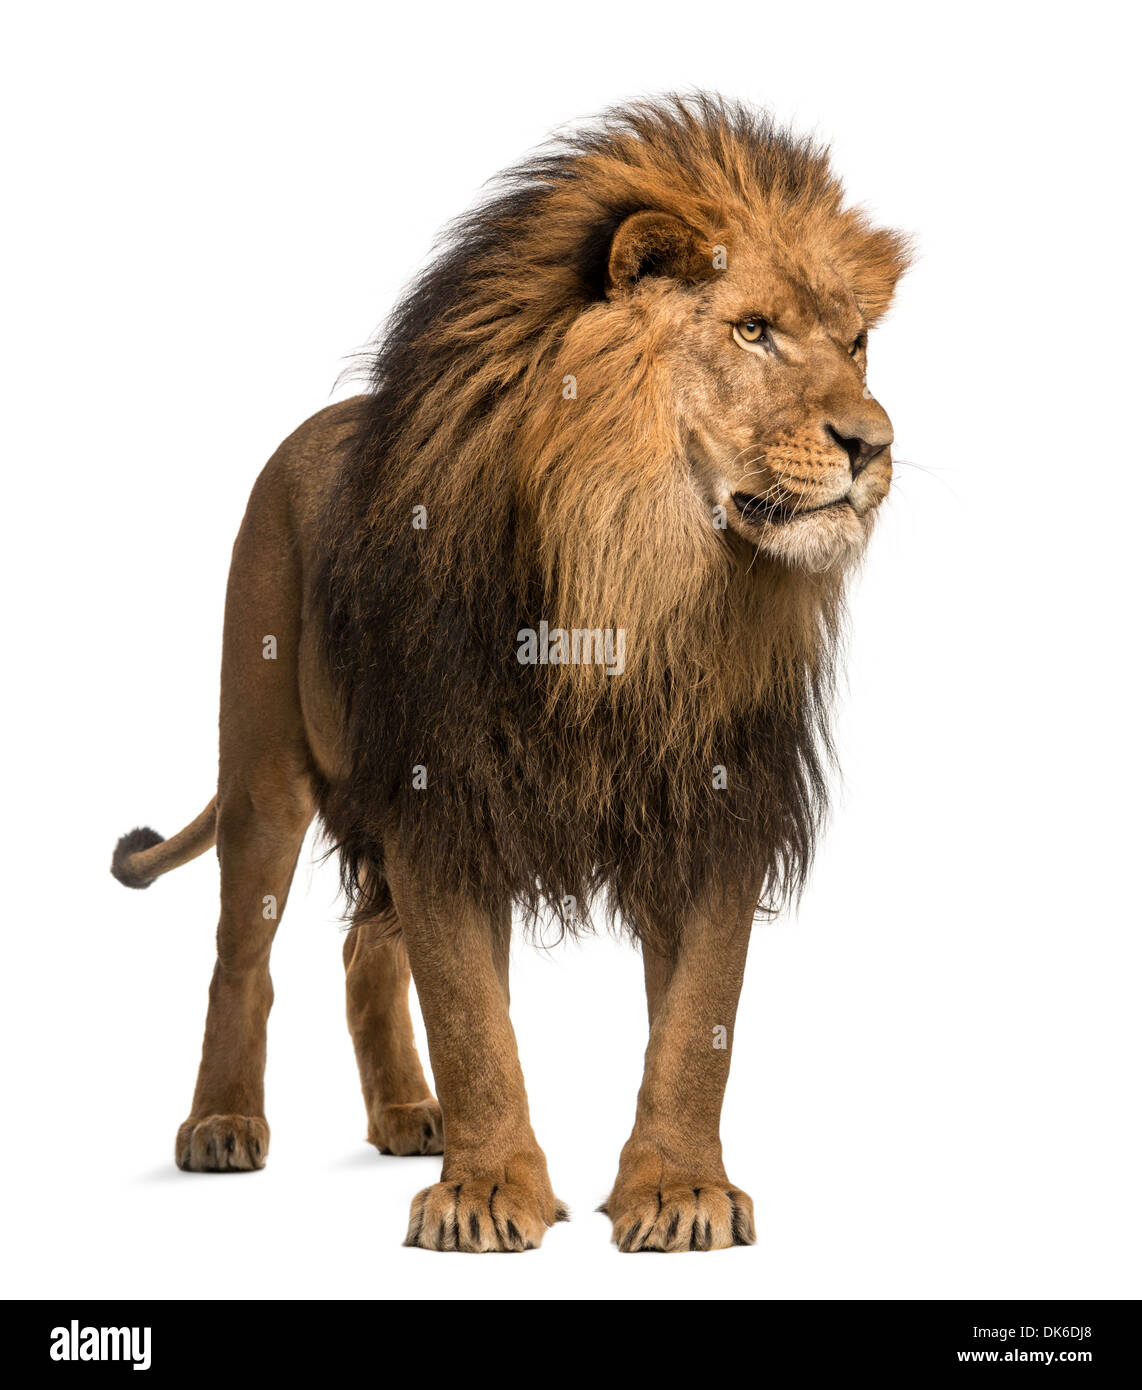 Lion standing, looking away, Panthera Leo, 10 years old, against white background - Stock Image